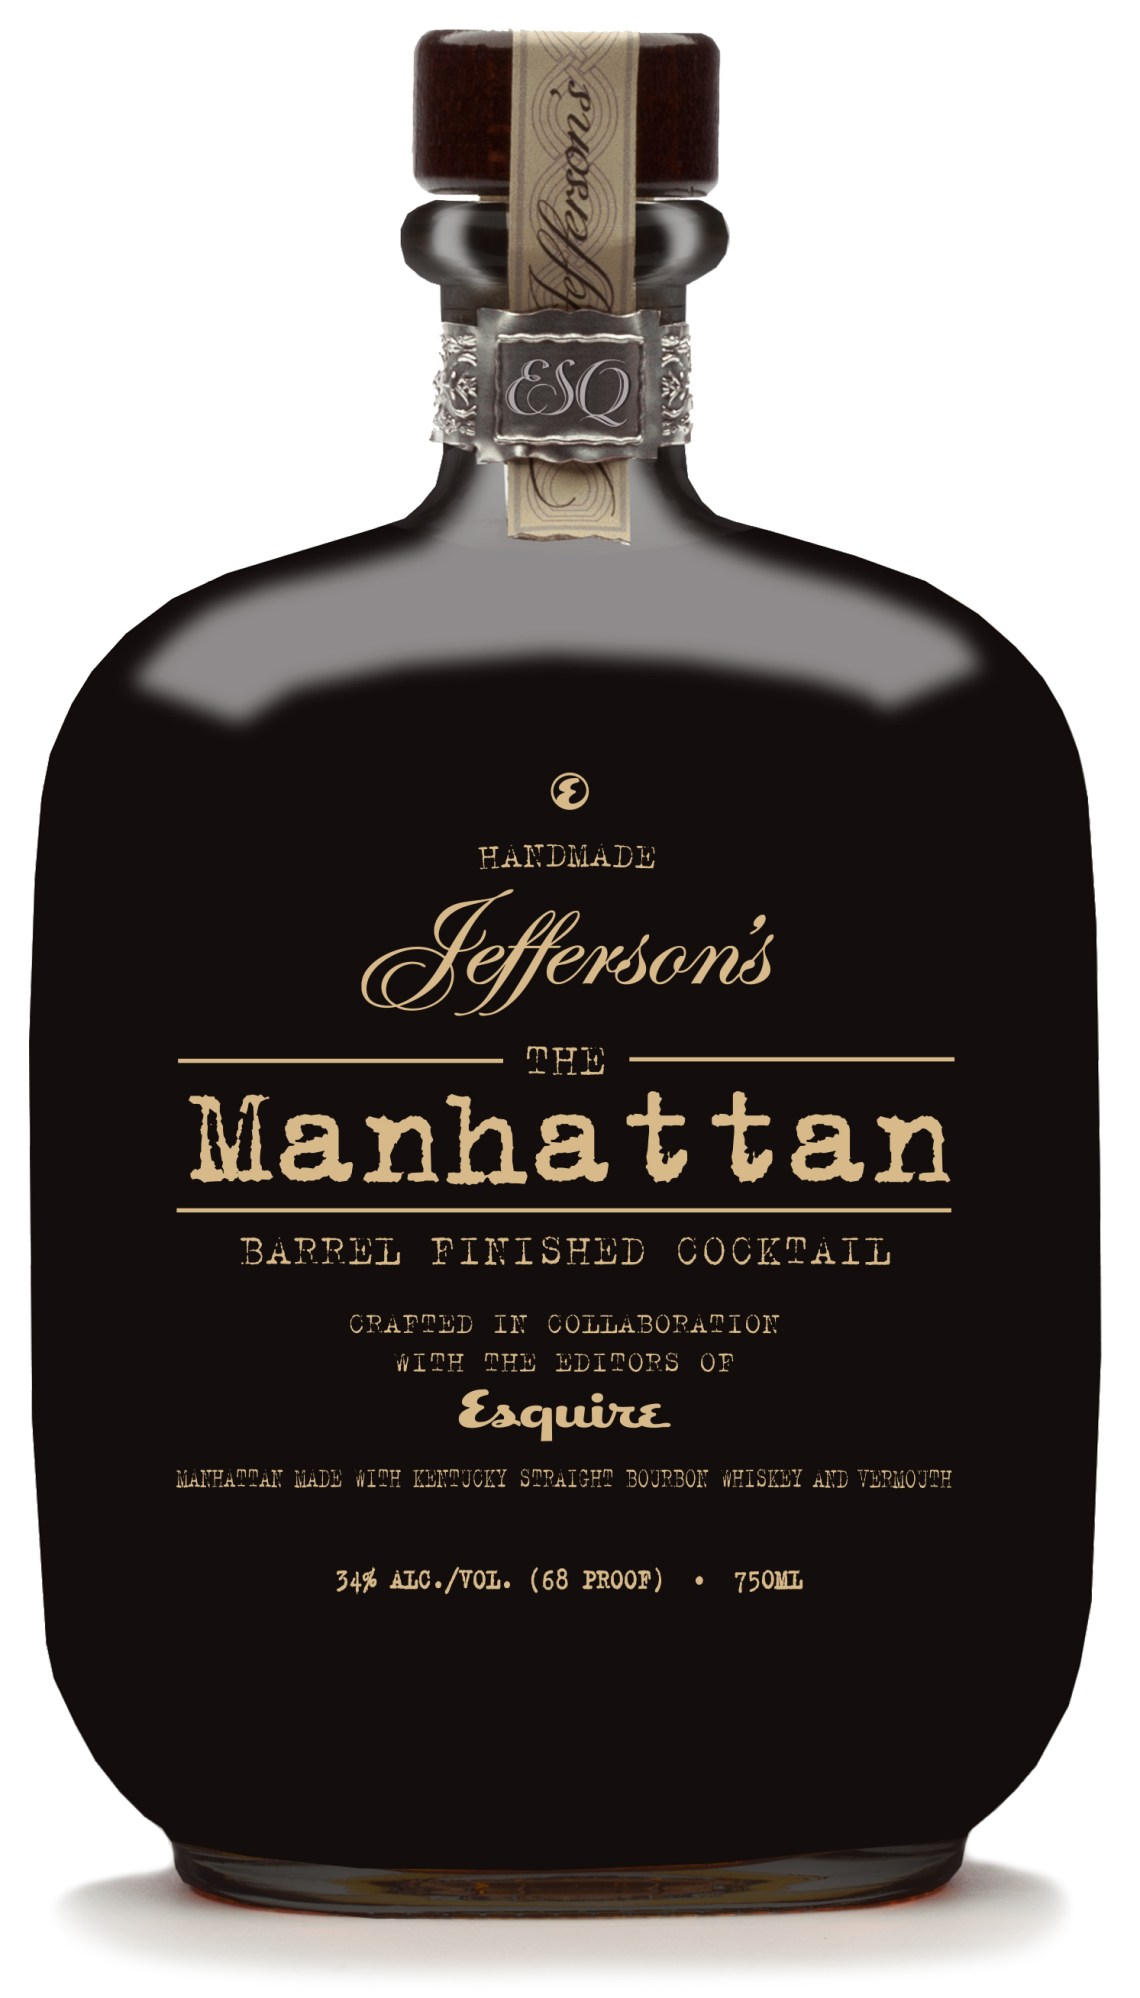 The Manhattan: Barrel Finished Cocktail from Jefferson's and Esquire